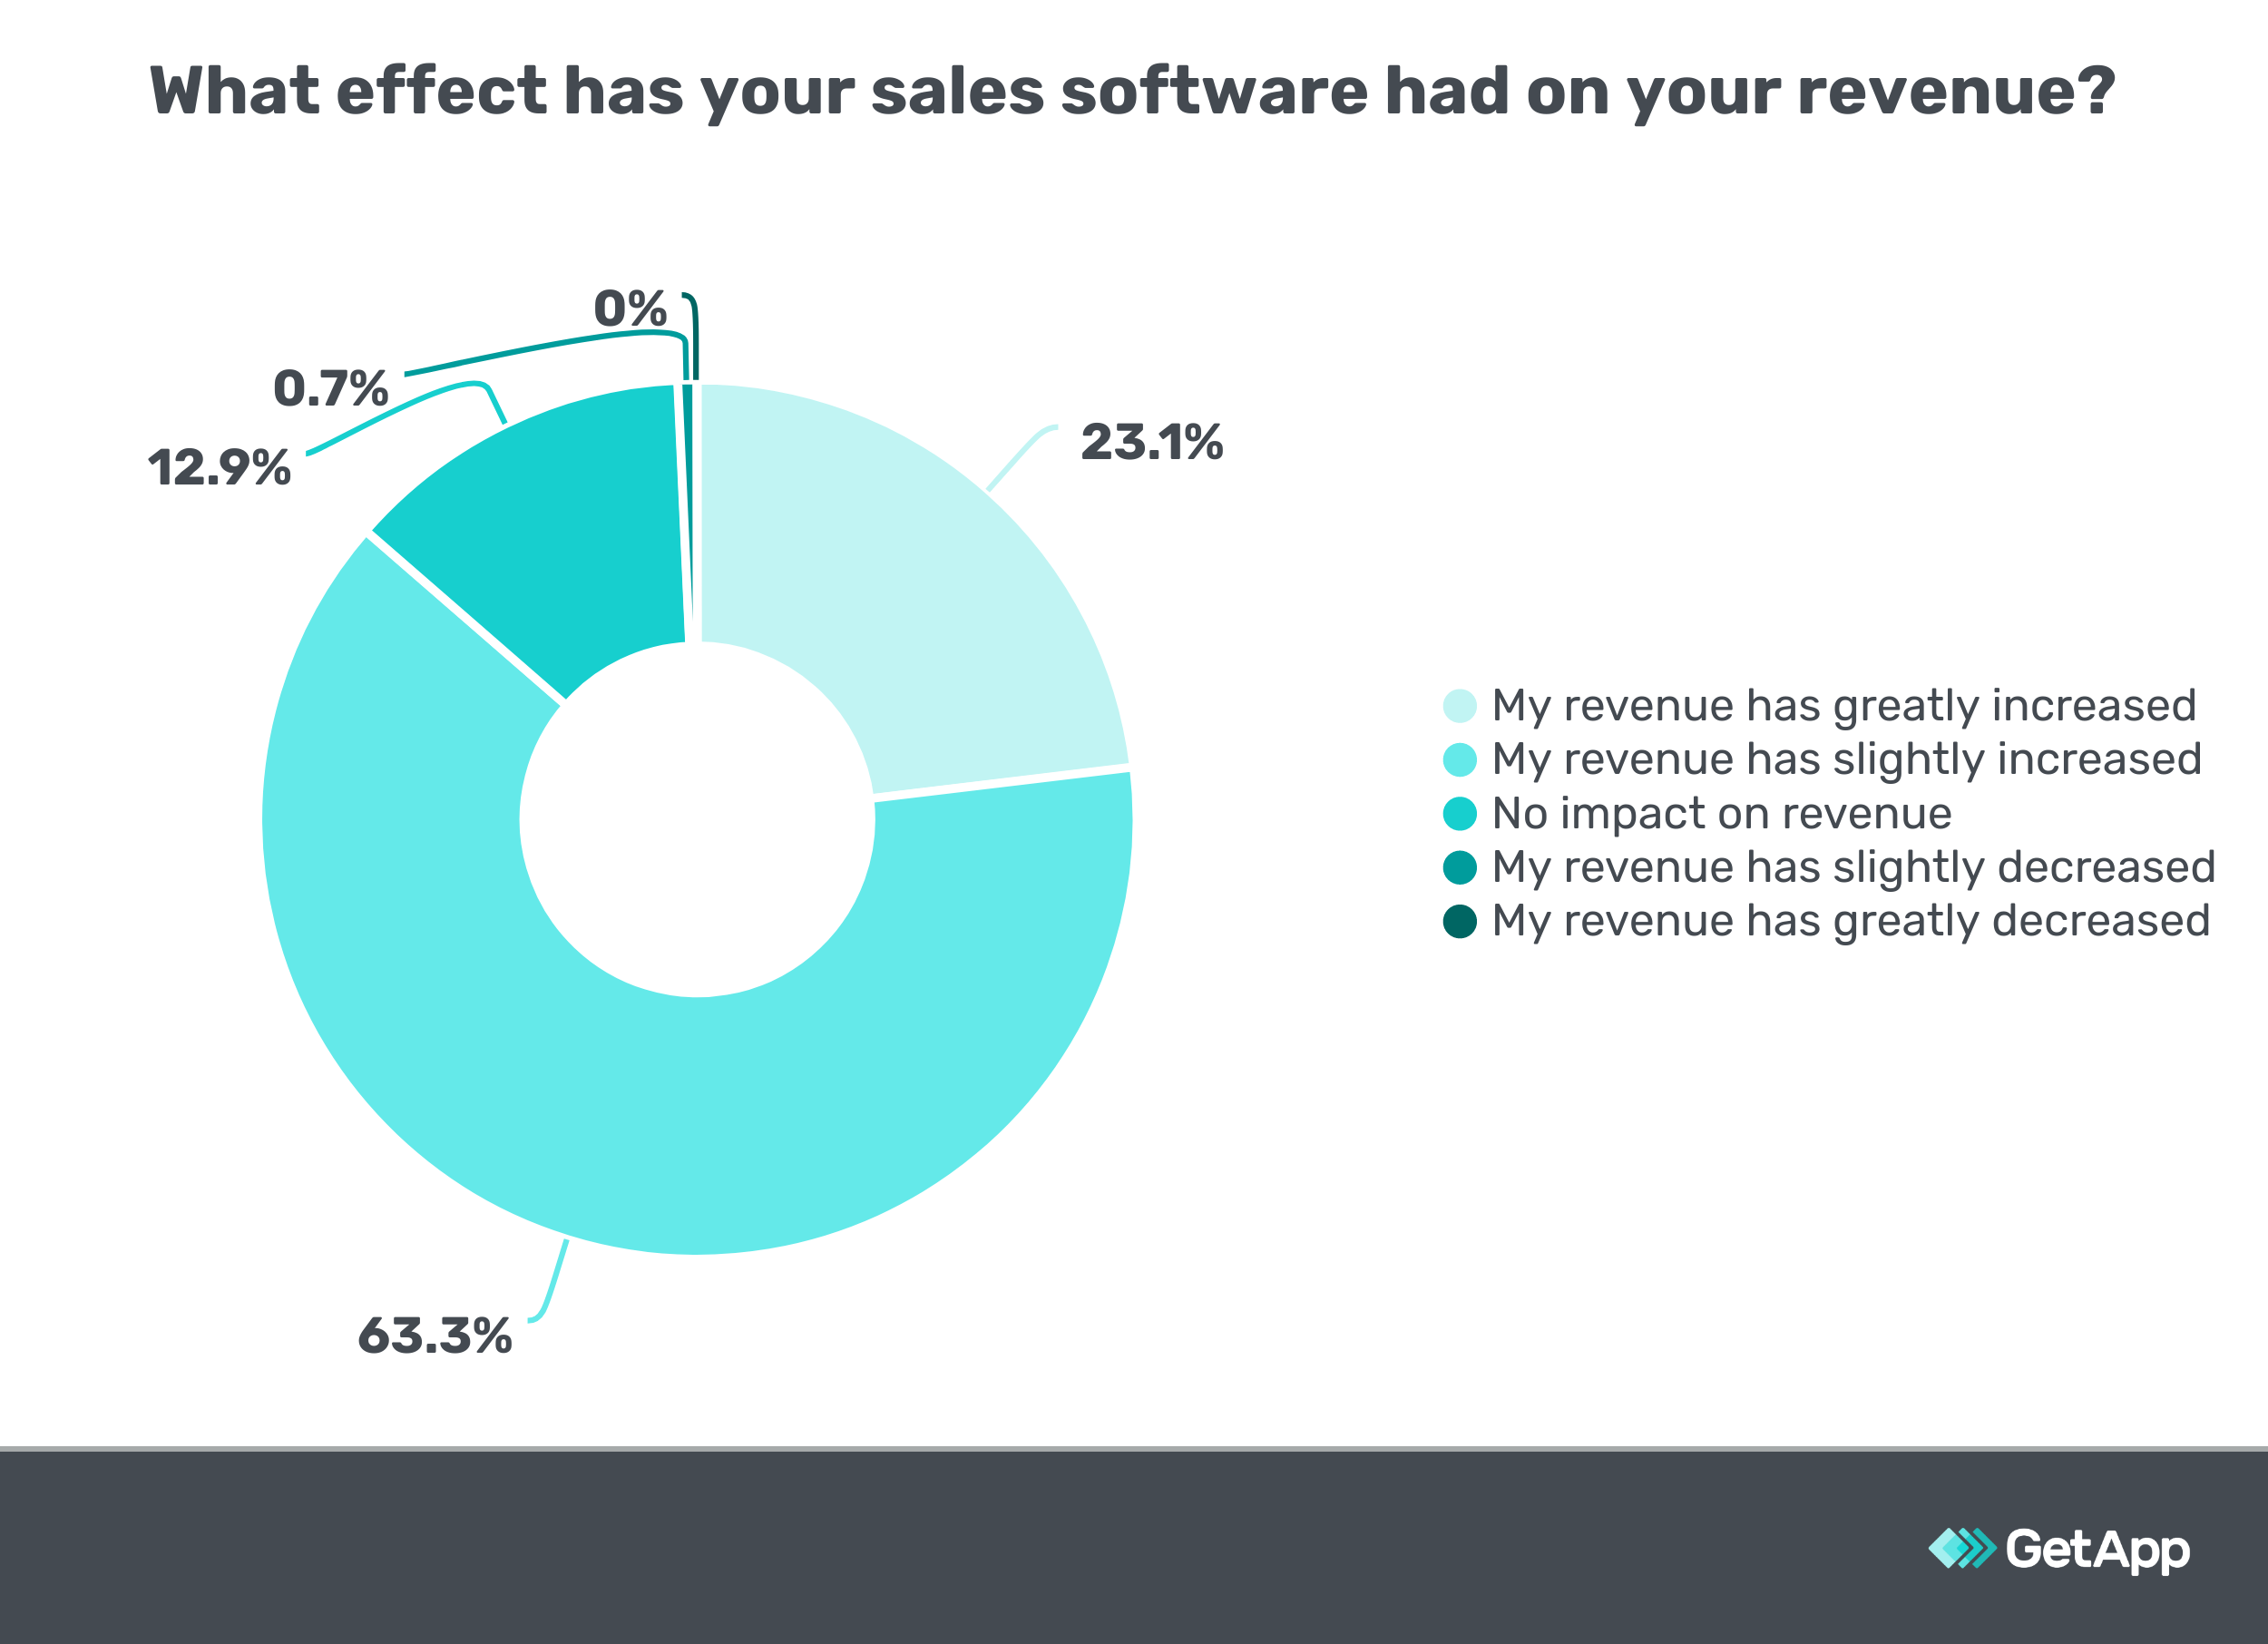 What effect has your sales software had on your revenue? Majority say revenue has slightly increased.